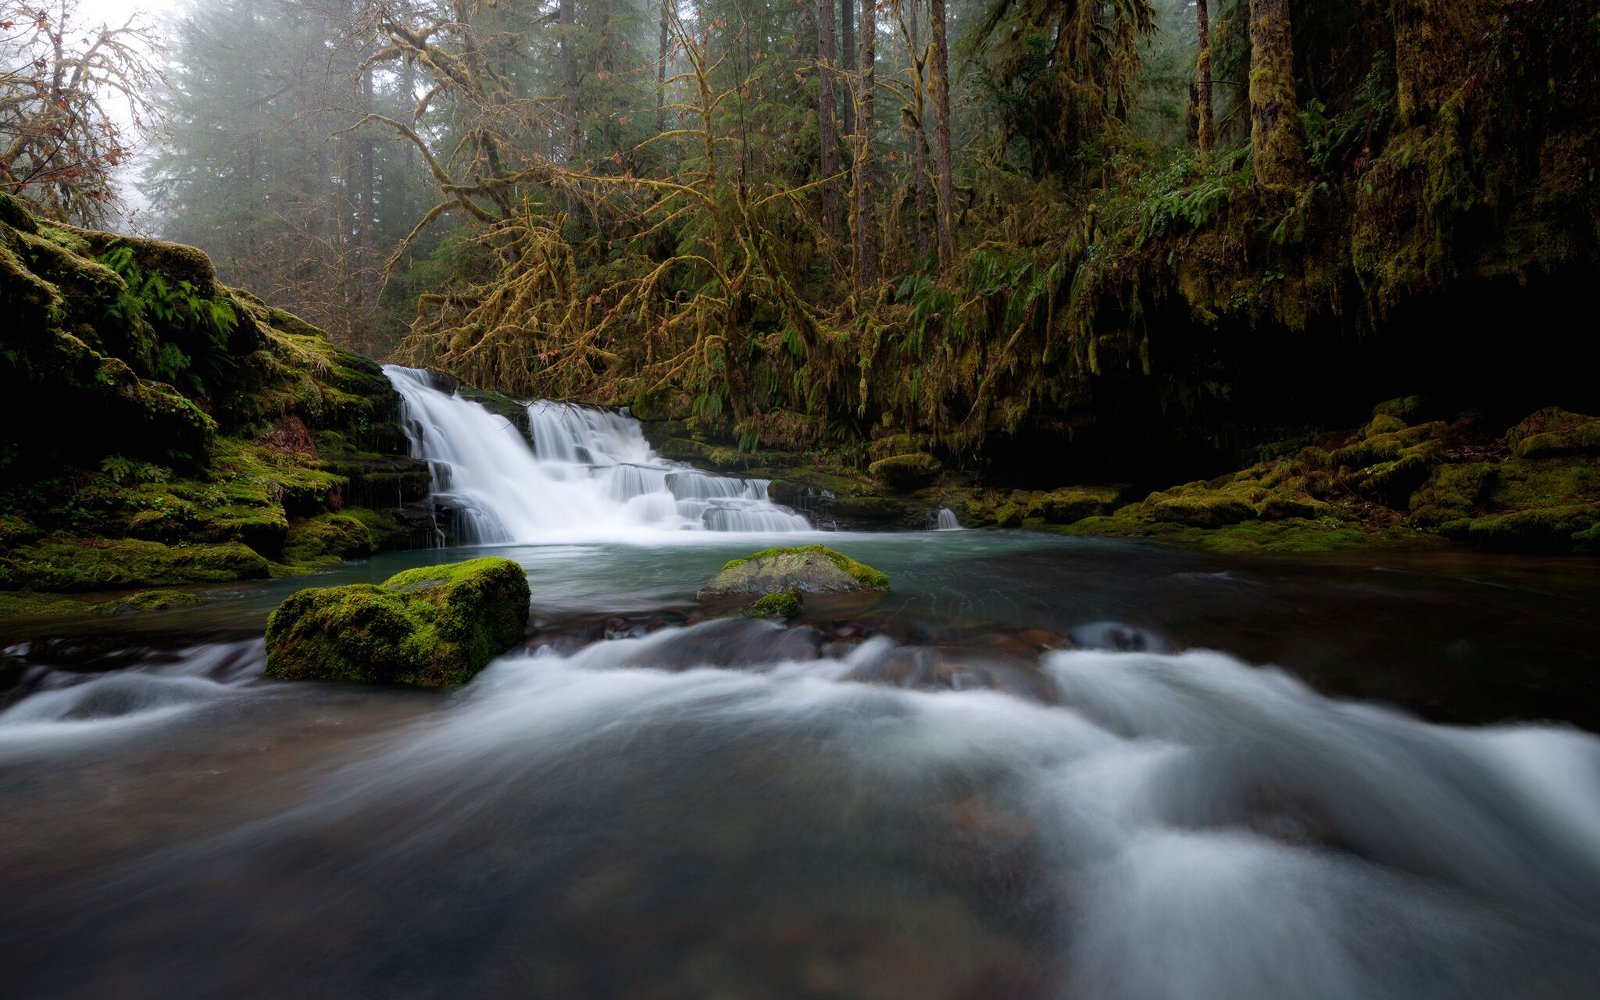 Oregon Board of Forestry Grants Petition to Protect Coho Salmon from Private and State Logging